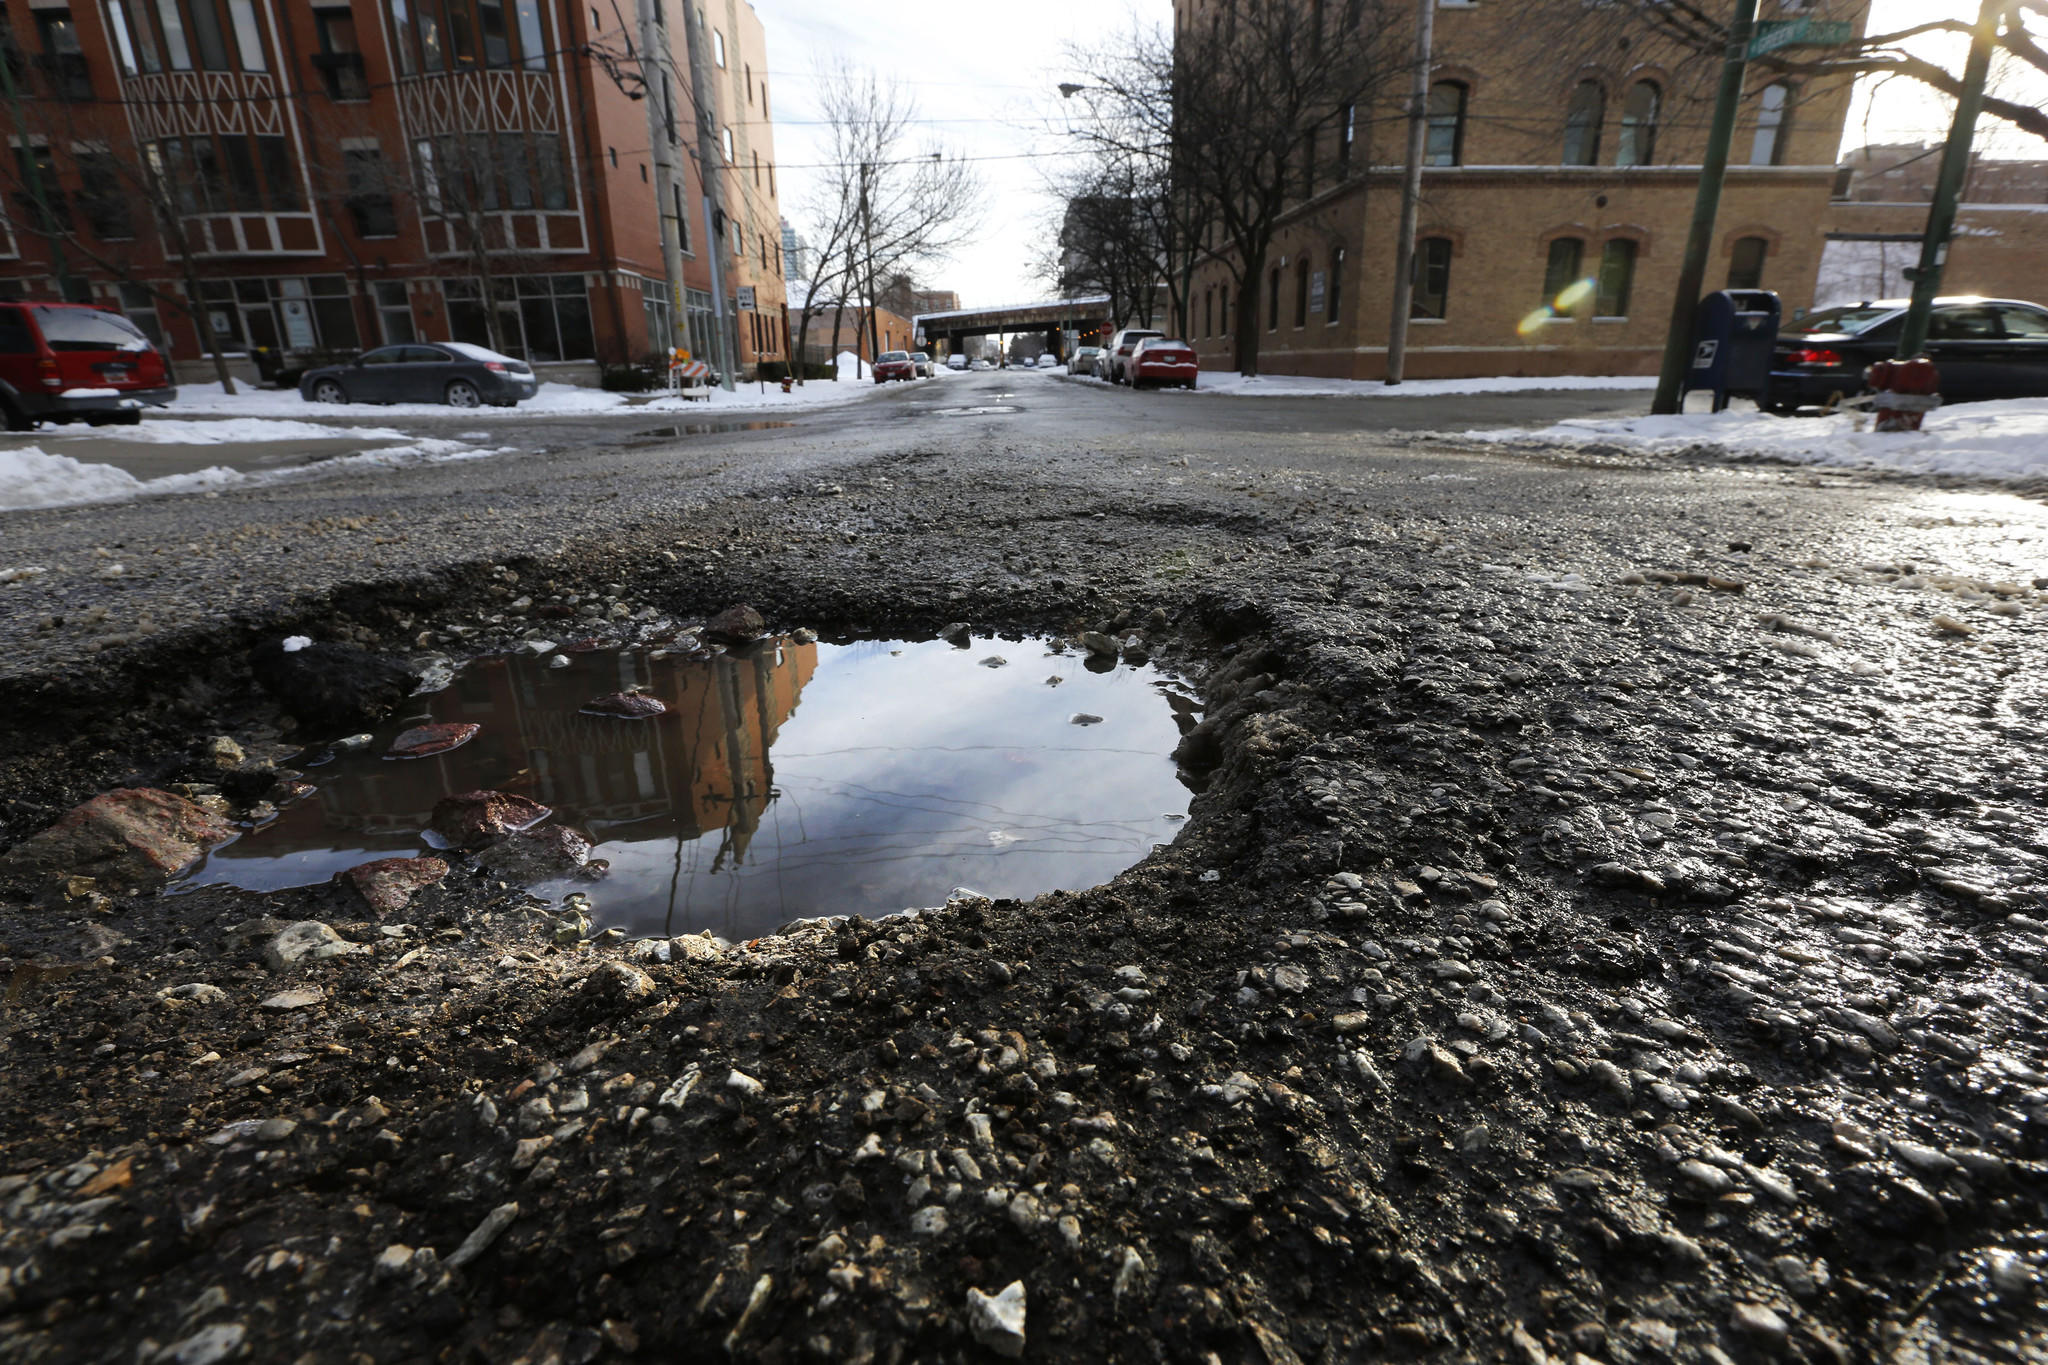 A pothole in the middle of the 700 block of N. Greet Street in Chicago (looking south) on Sunday, Jan. 26, 2014.